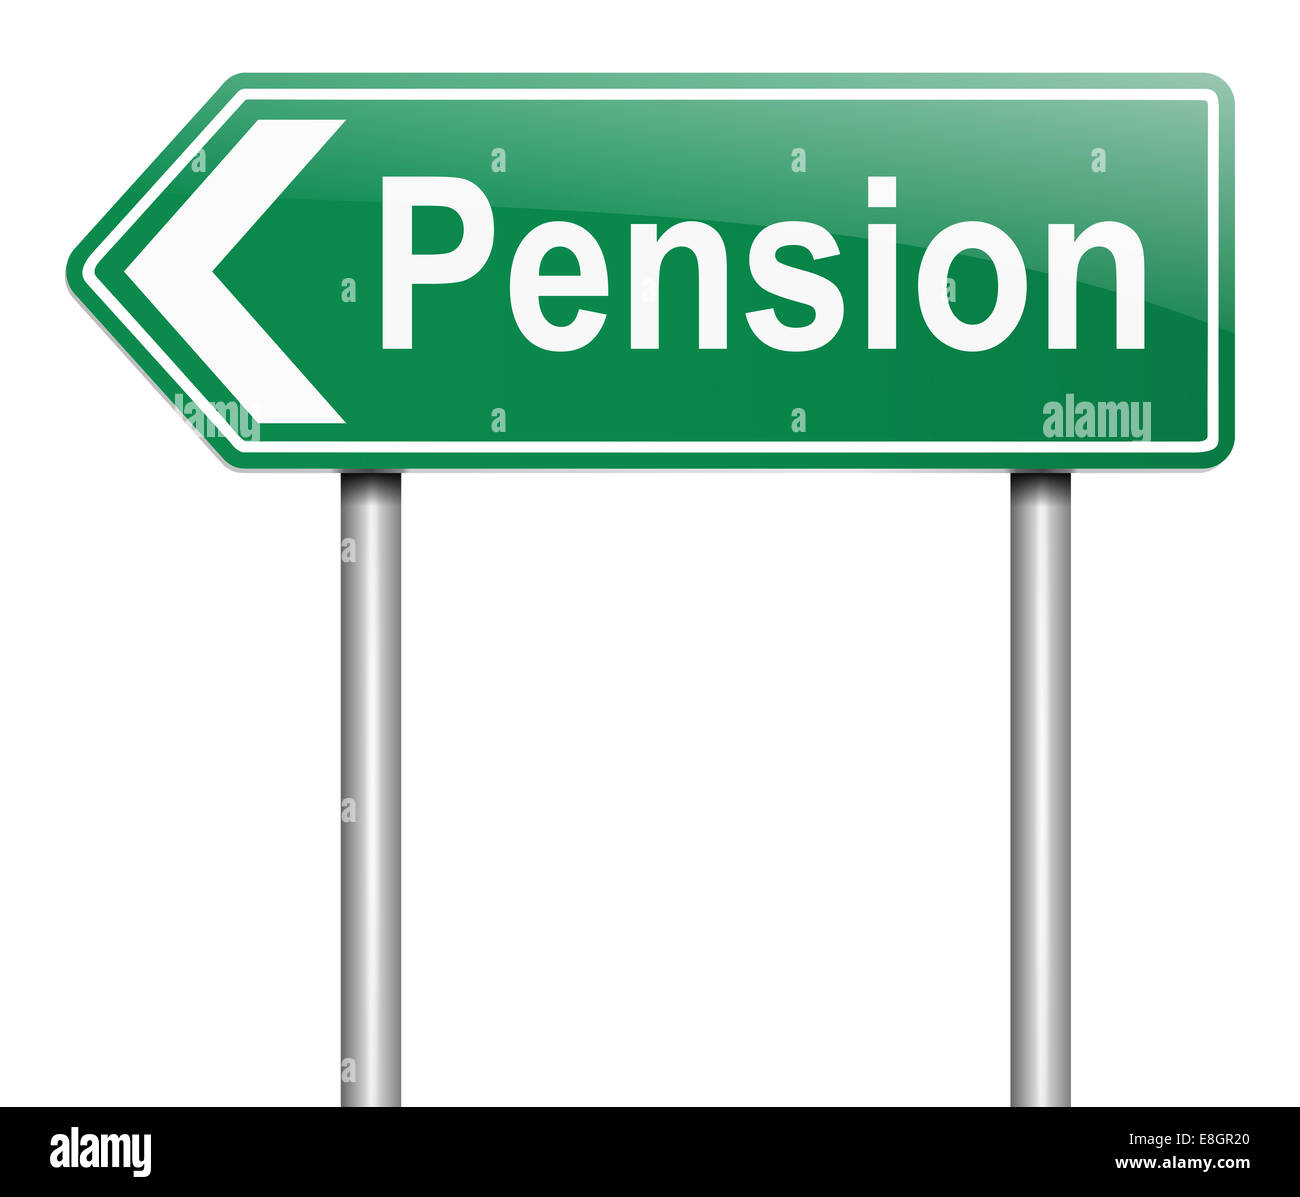 Pension concept. - Stock Image